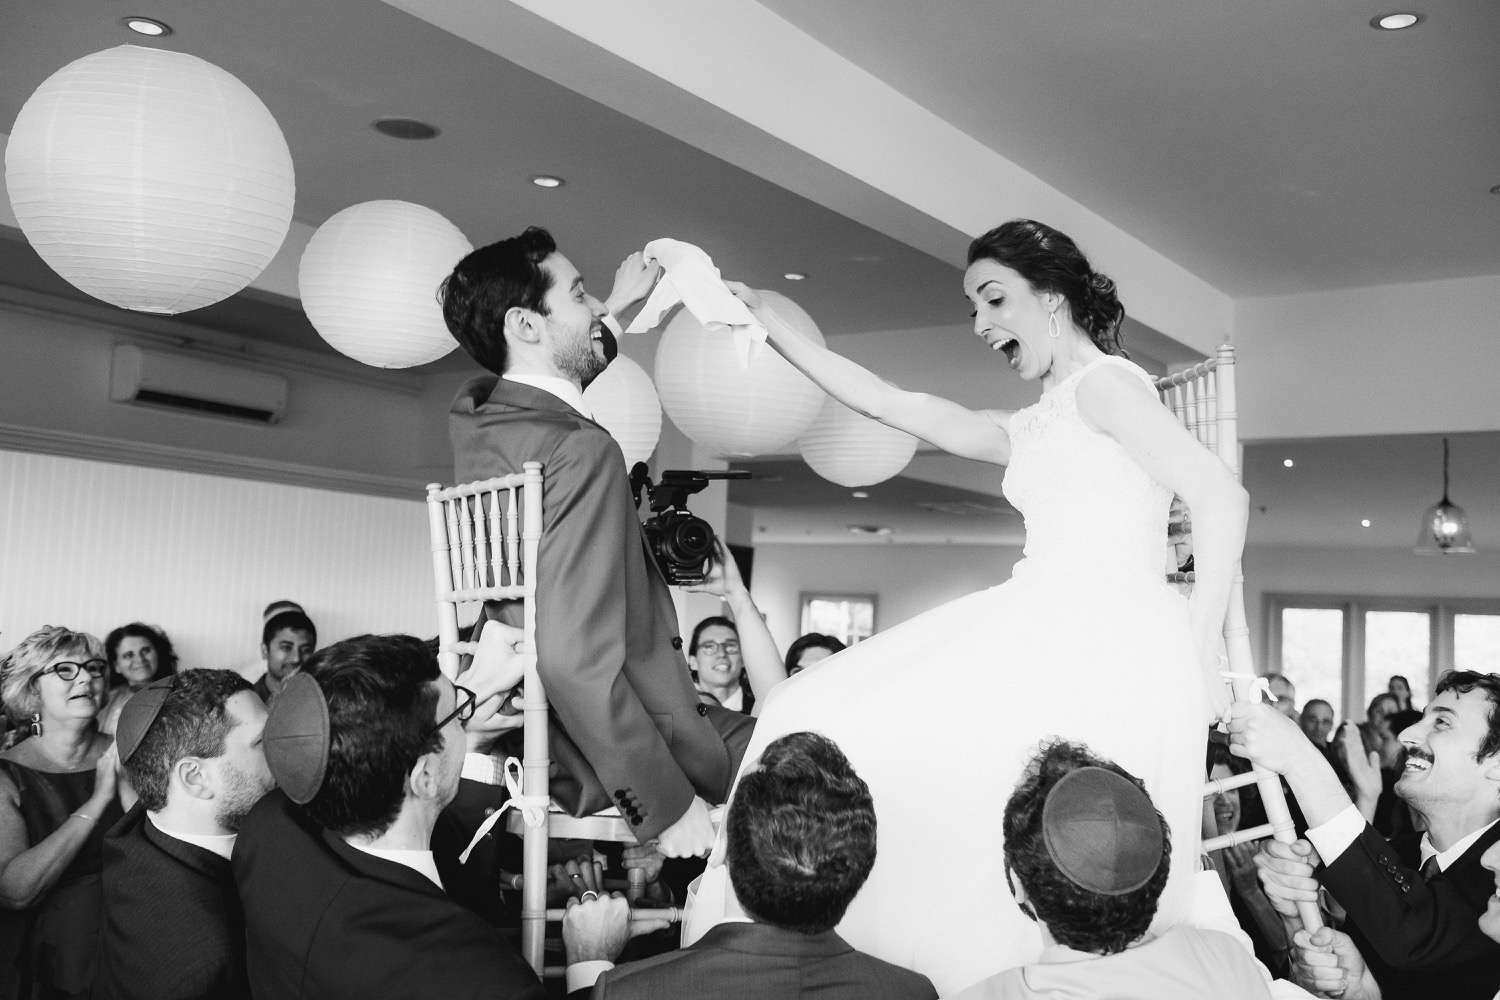 The Garrison Wedding, The Garrison venue, Hudson Valley wedding, hudson valley wedding photographer, catskills wedding photographer, the garrison wedding photos, best catskills wedding photographer, wedding photo inspo, wedding moment inspiration, hora, hora photos